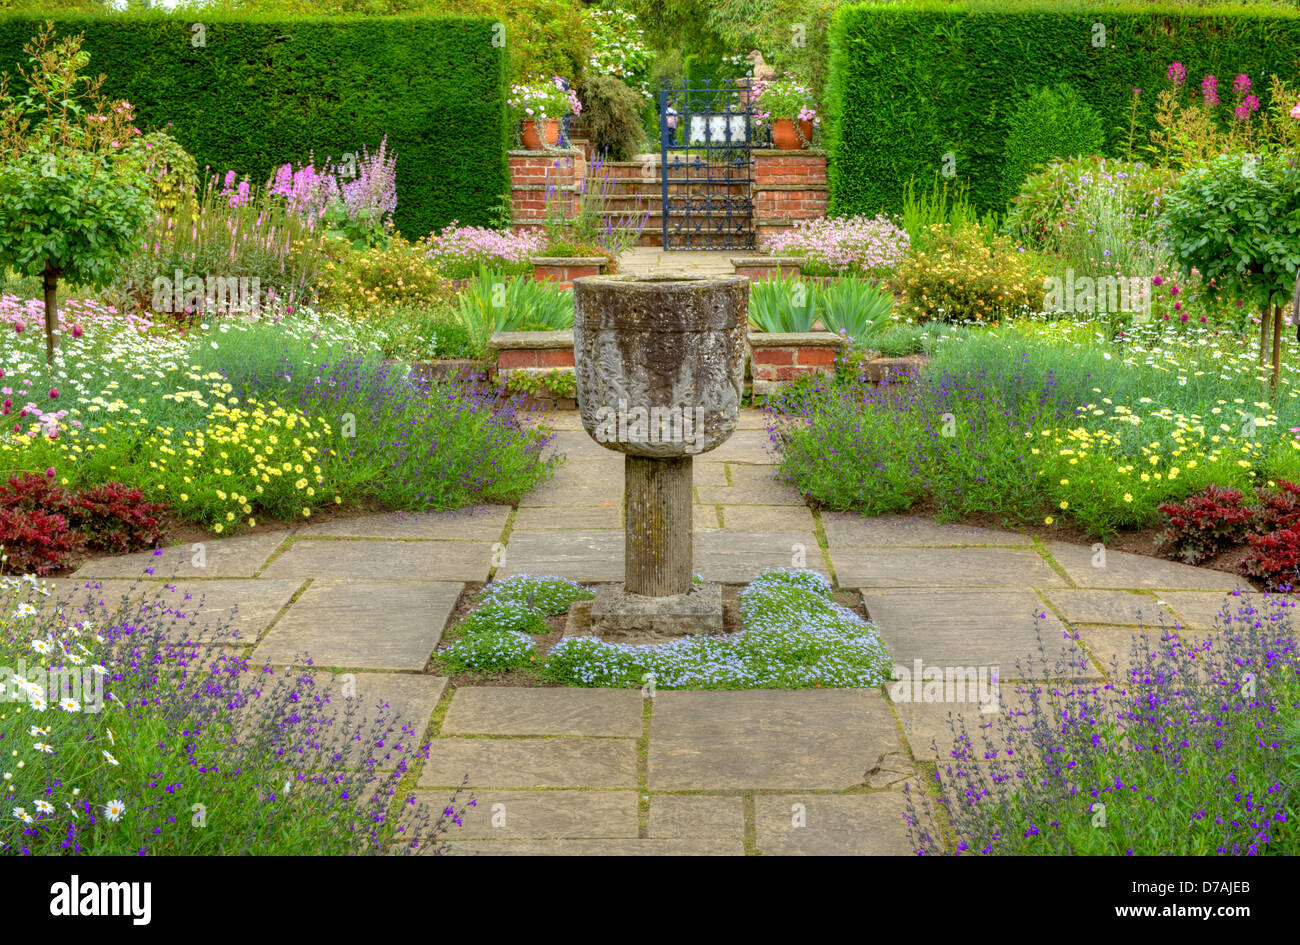 Flagged formal garden with a stone vase ornament and summer flowers. - Stock Image